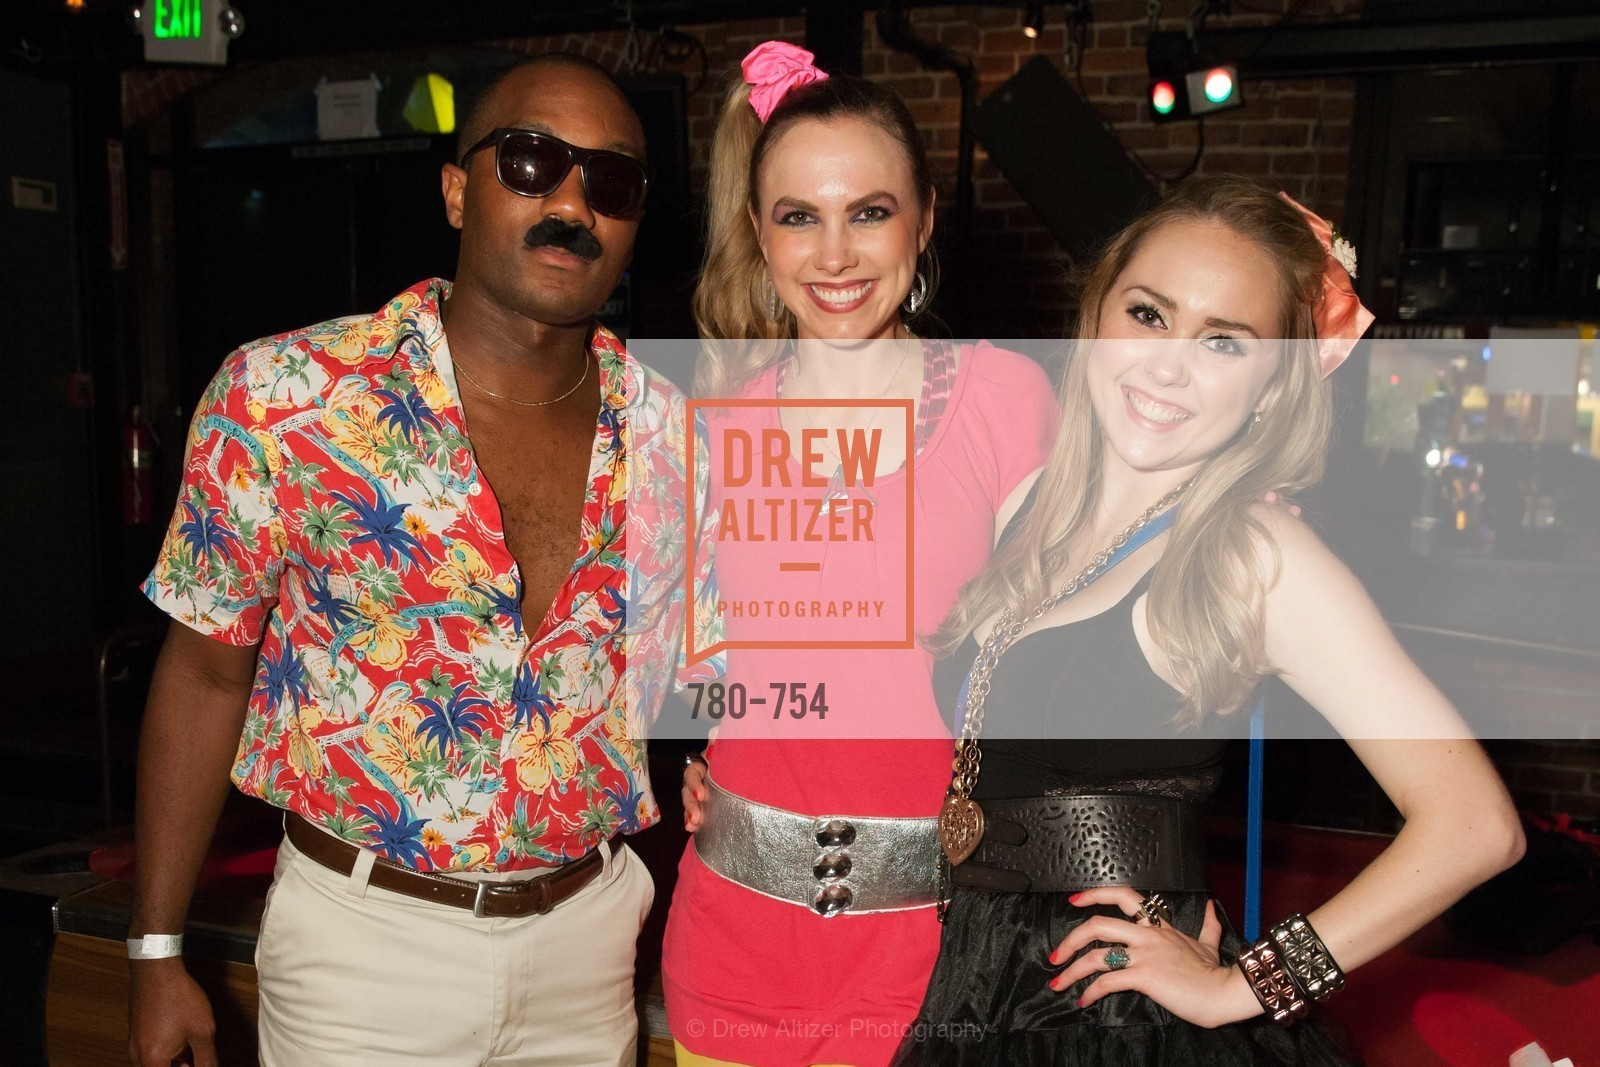 Robert Thompson, Michelle Bertino, SPINSTERS OF SAN FRANCISCO Party Like It's 1985 Charity Party, US, May 29th, 2015,Drew Altizer, Drew Altizer Photography, full-service agency, private events, San Francisco photographer, photographer california